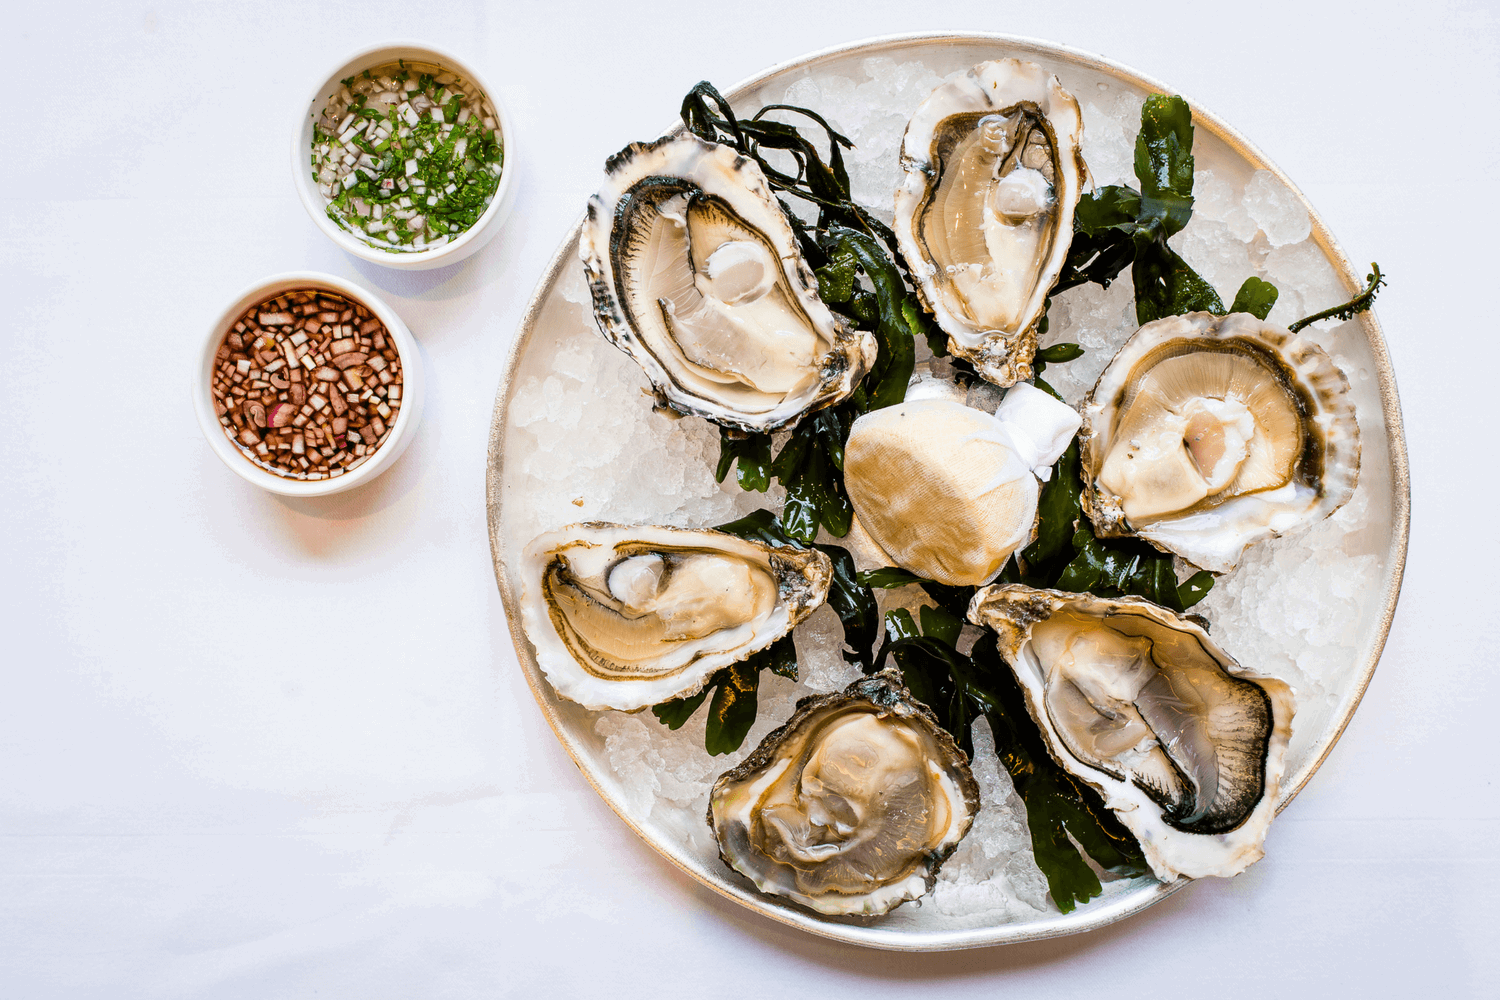 Oyster Bar in London, Scott's Restaurant, Fish, Seafood and Shellfish in Mayfair